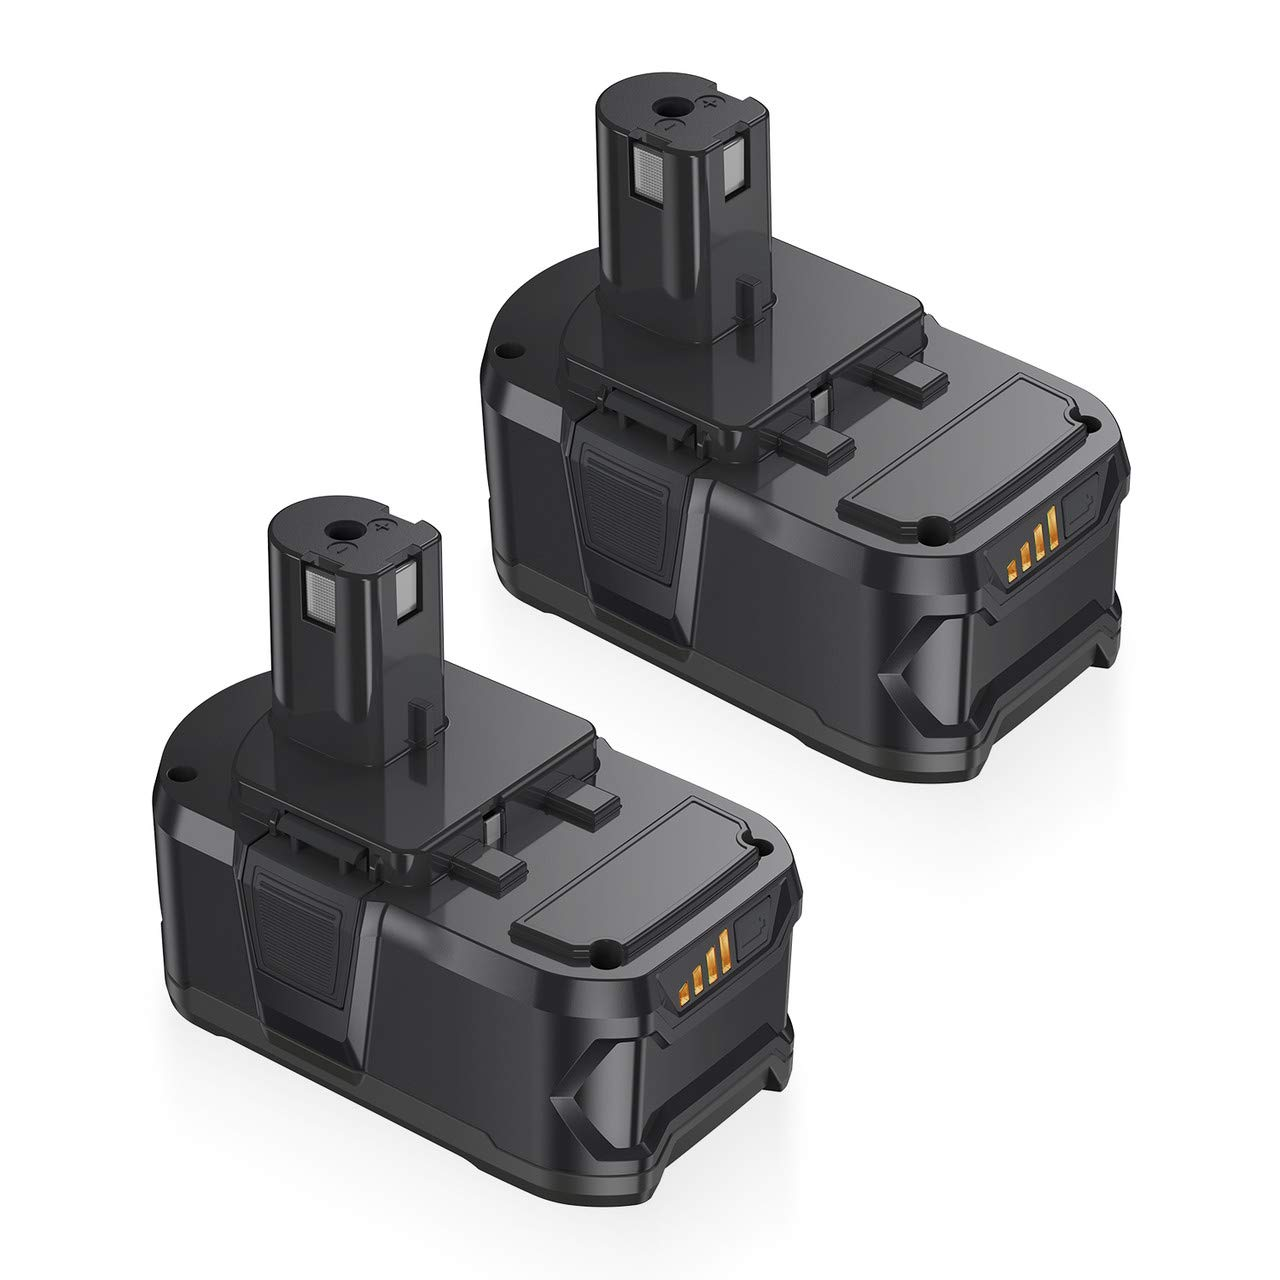 Powerextra 2 Pack Ryobi ONE+ 18V 5.0Ah Li-Ion Battery Replacement for Ryobi RB18L50 RB18L40 RB18L25 P108 P107 P122 P104 P105 P102 P103 P109 with LED Indicator